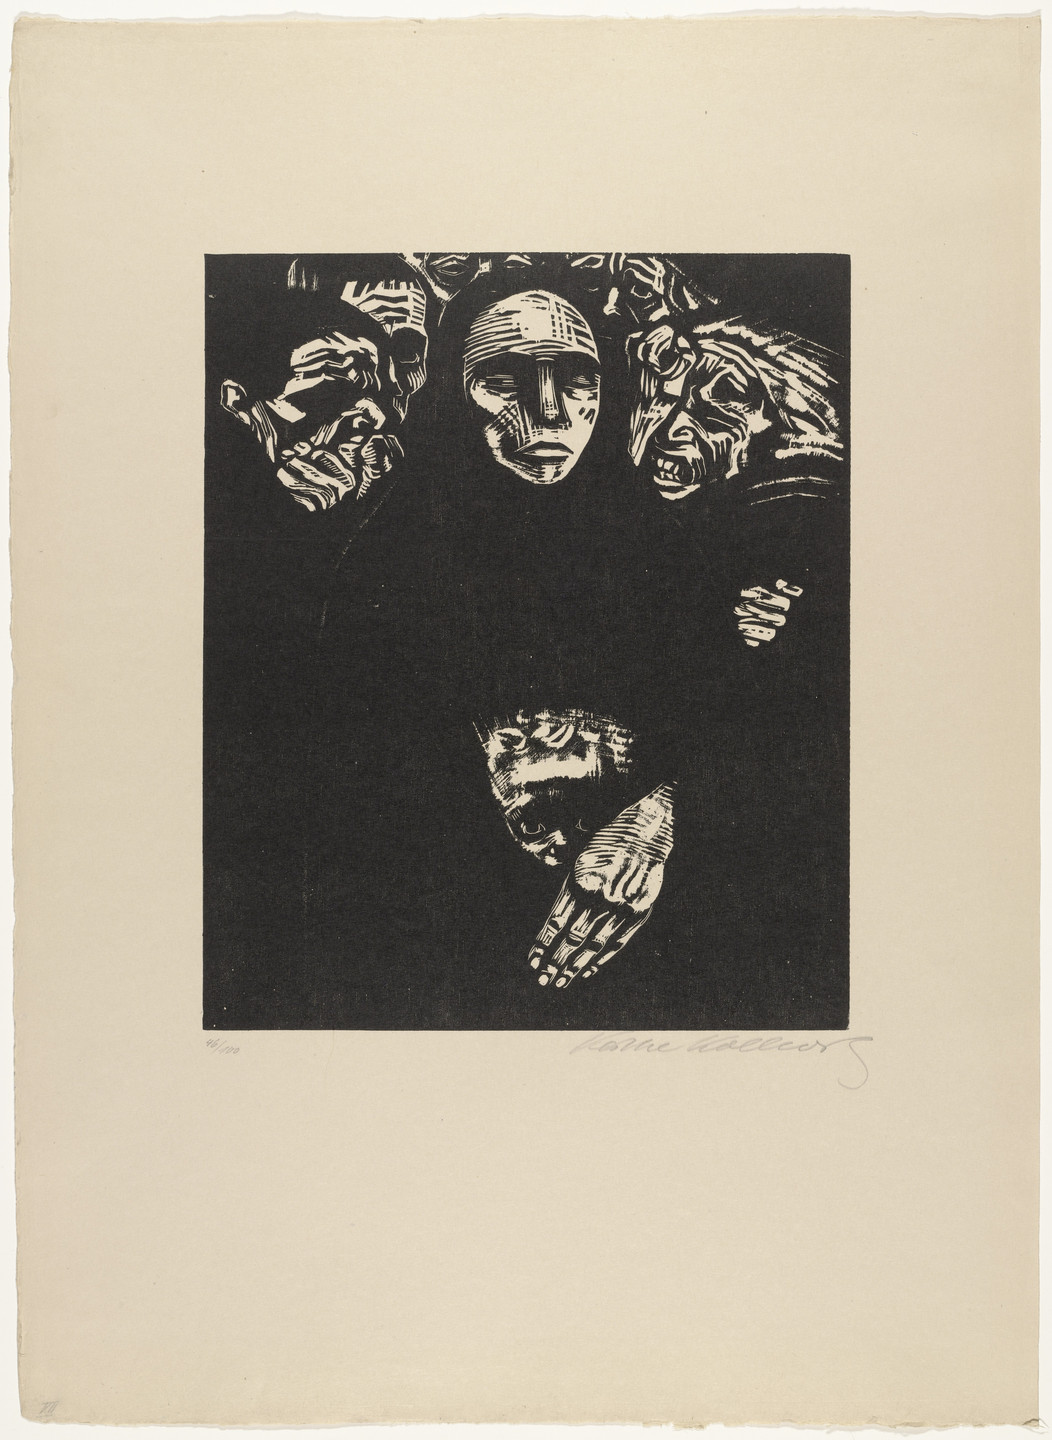 Käthe Kollwitz. The People (Das Volk) from War (Krieg). 1922, published 1923